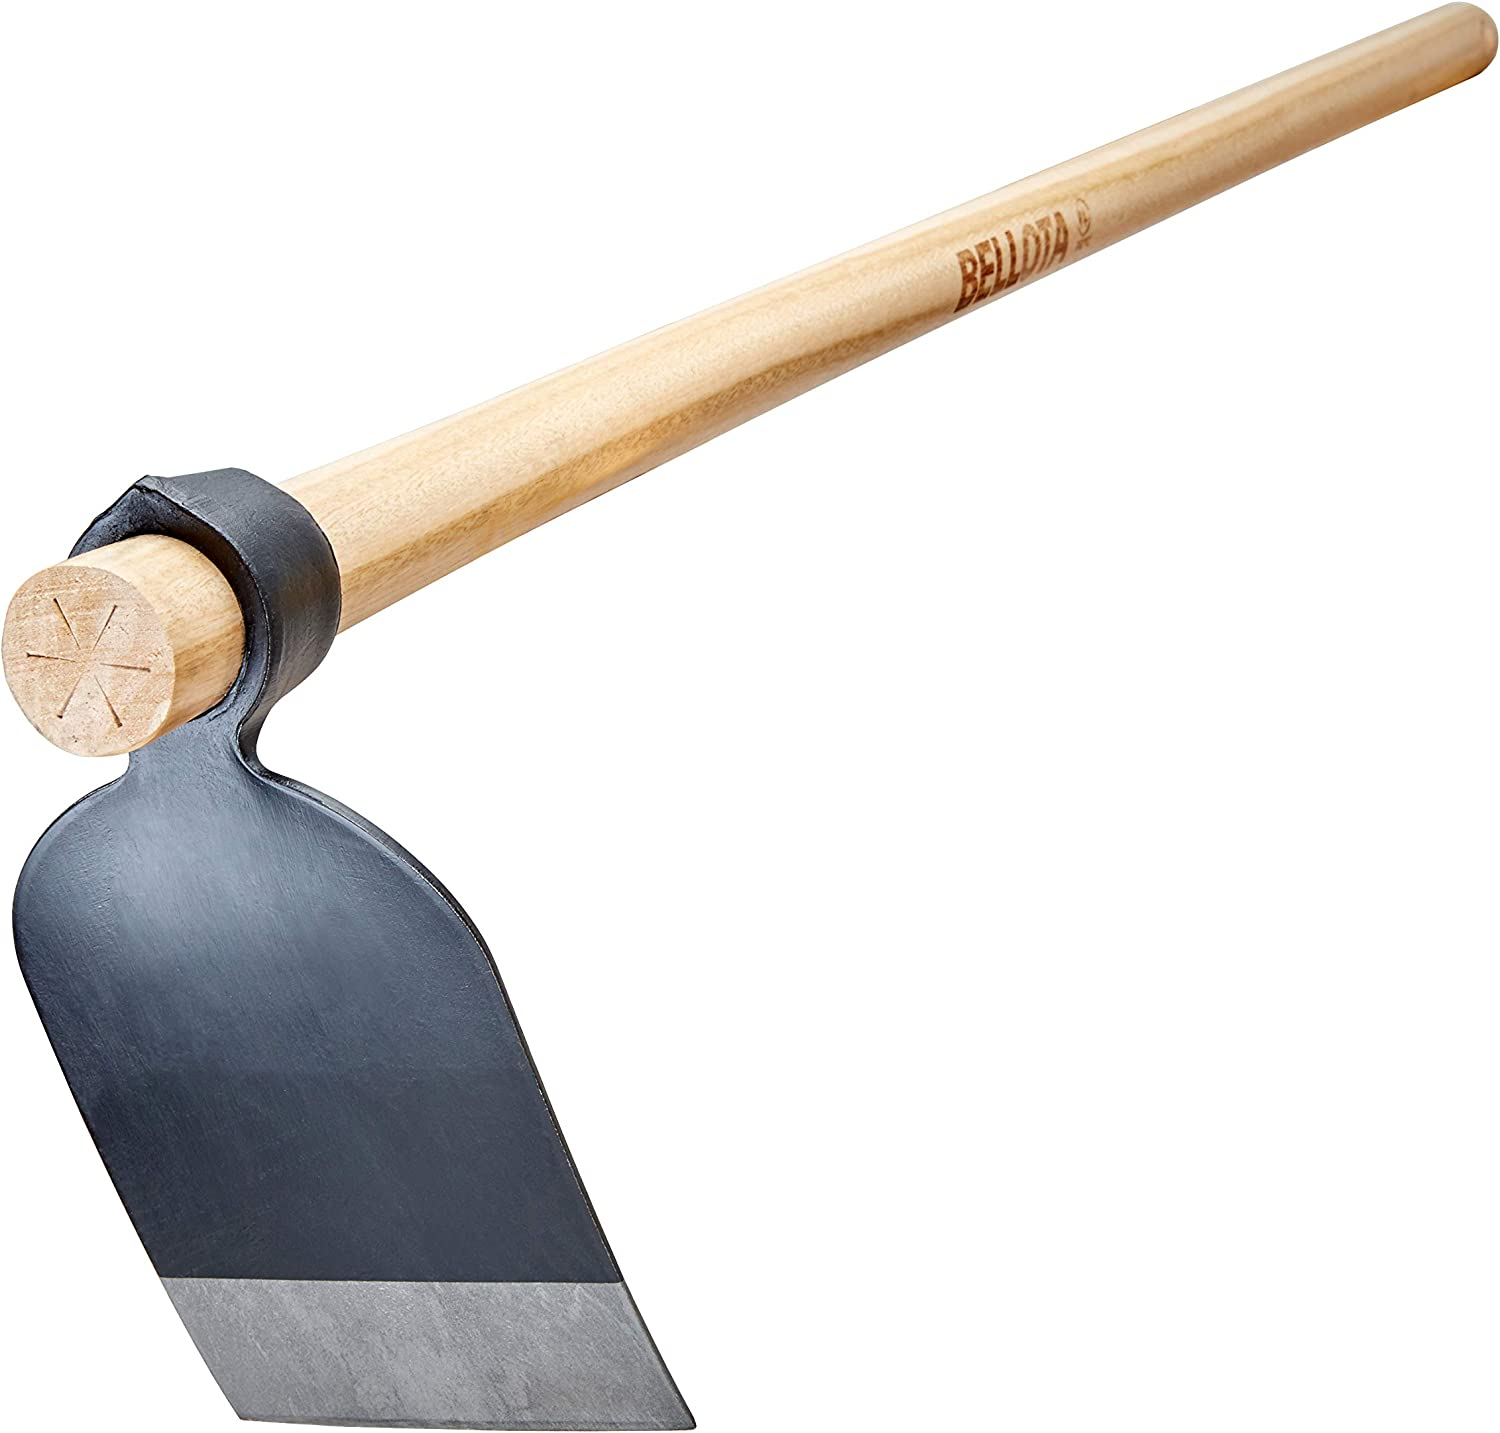 Bellota 325-800 cm 1100 325800 cm 1100-Hoe with Handle for Agriculture and Gardening Black//Grey//Brown